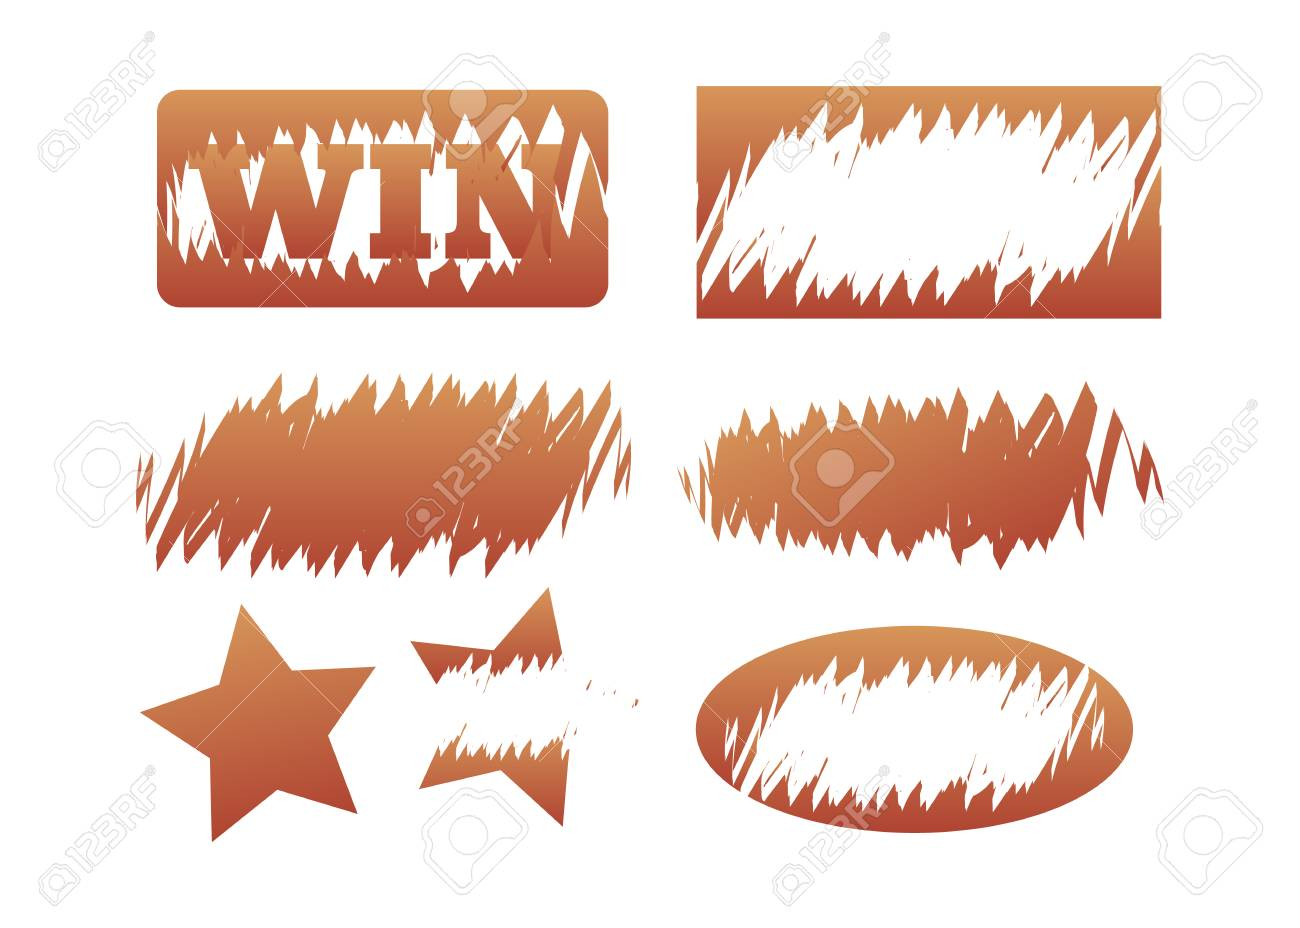 Free Scratch Cards >> Scratch Cards Vector Lottery Cover For Scratch Card